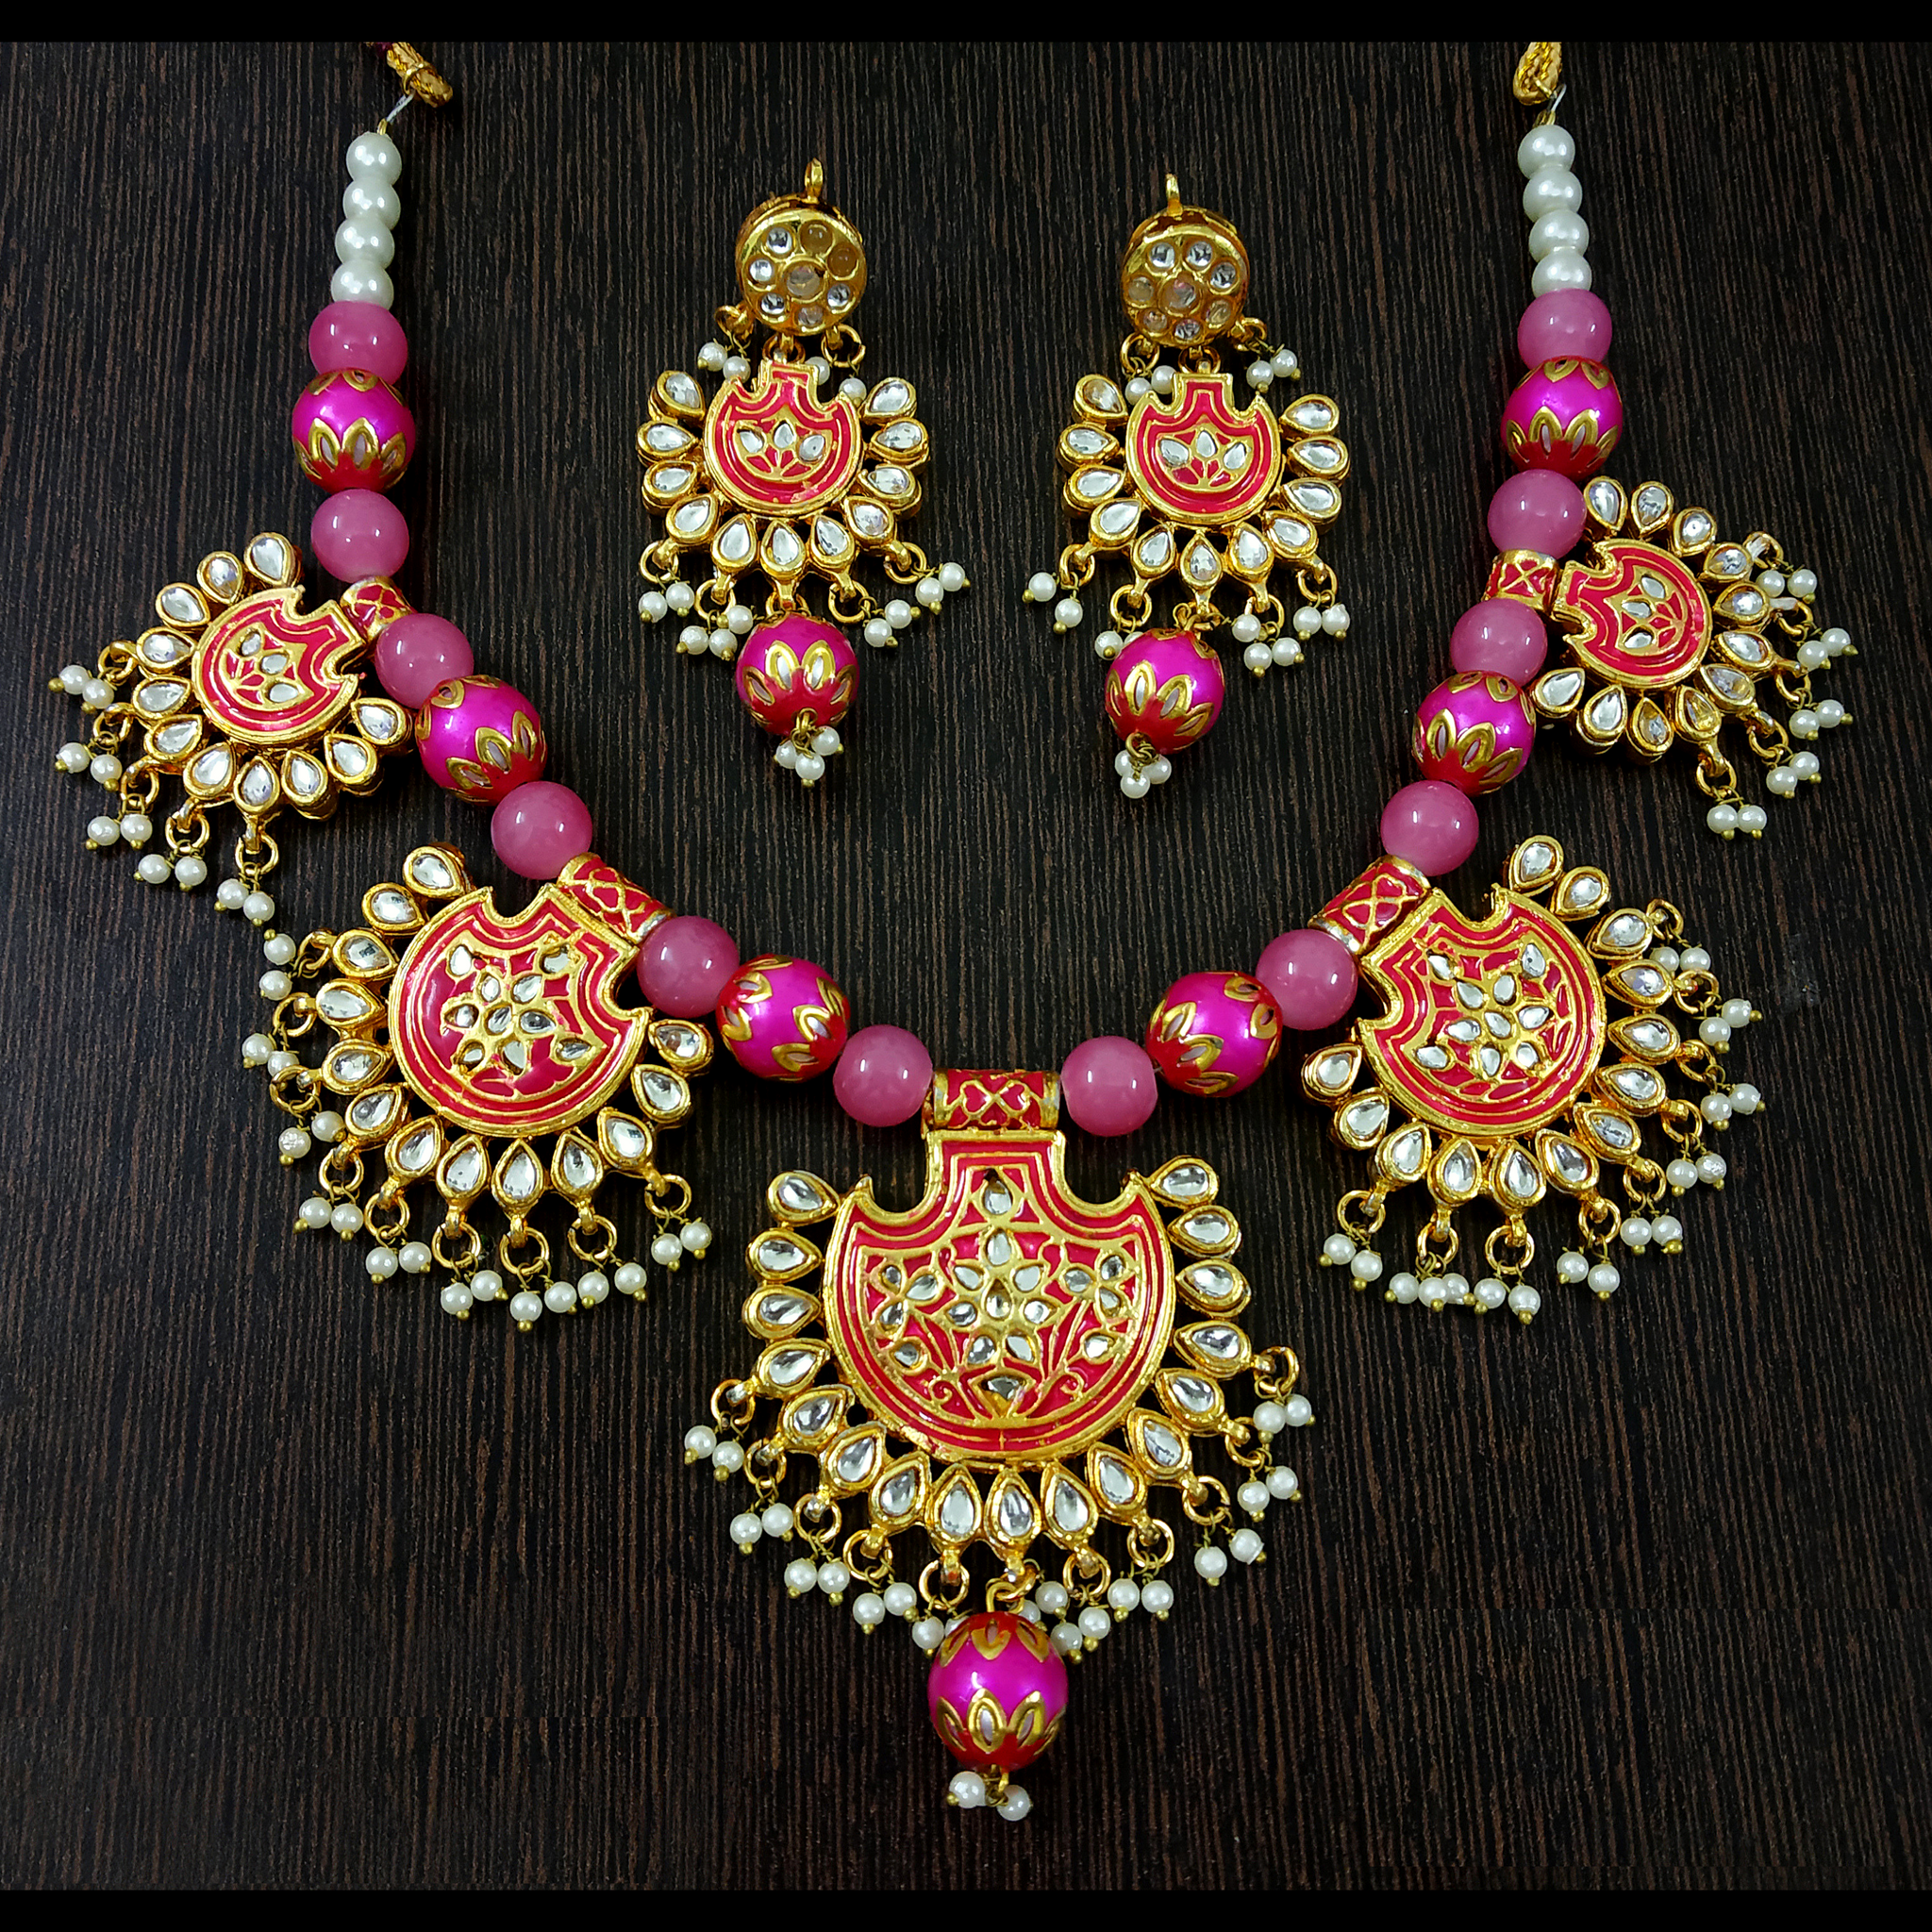 Pink Kundan and Moti - Choker Necklace Set in Golden - Pink